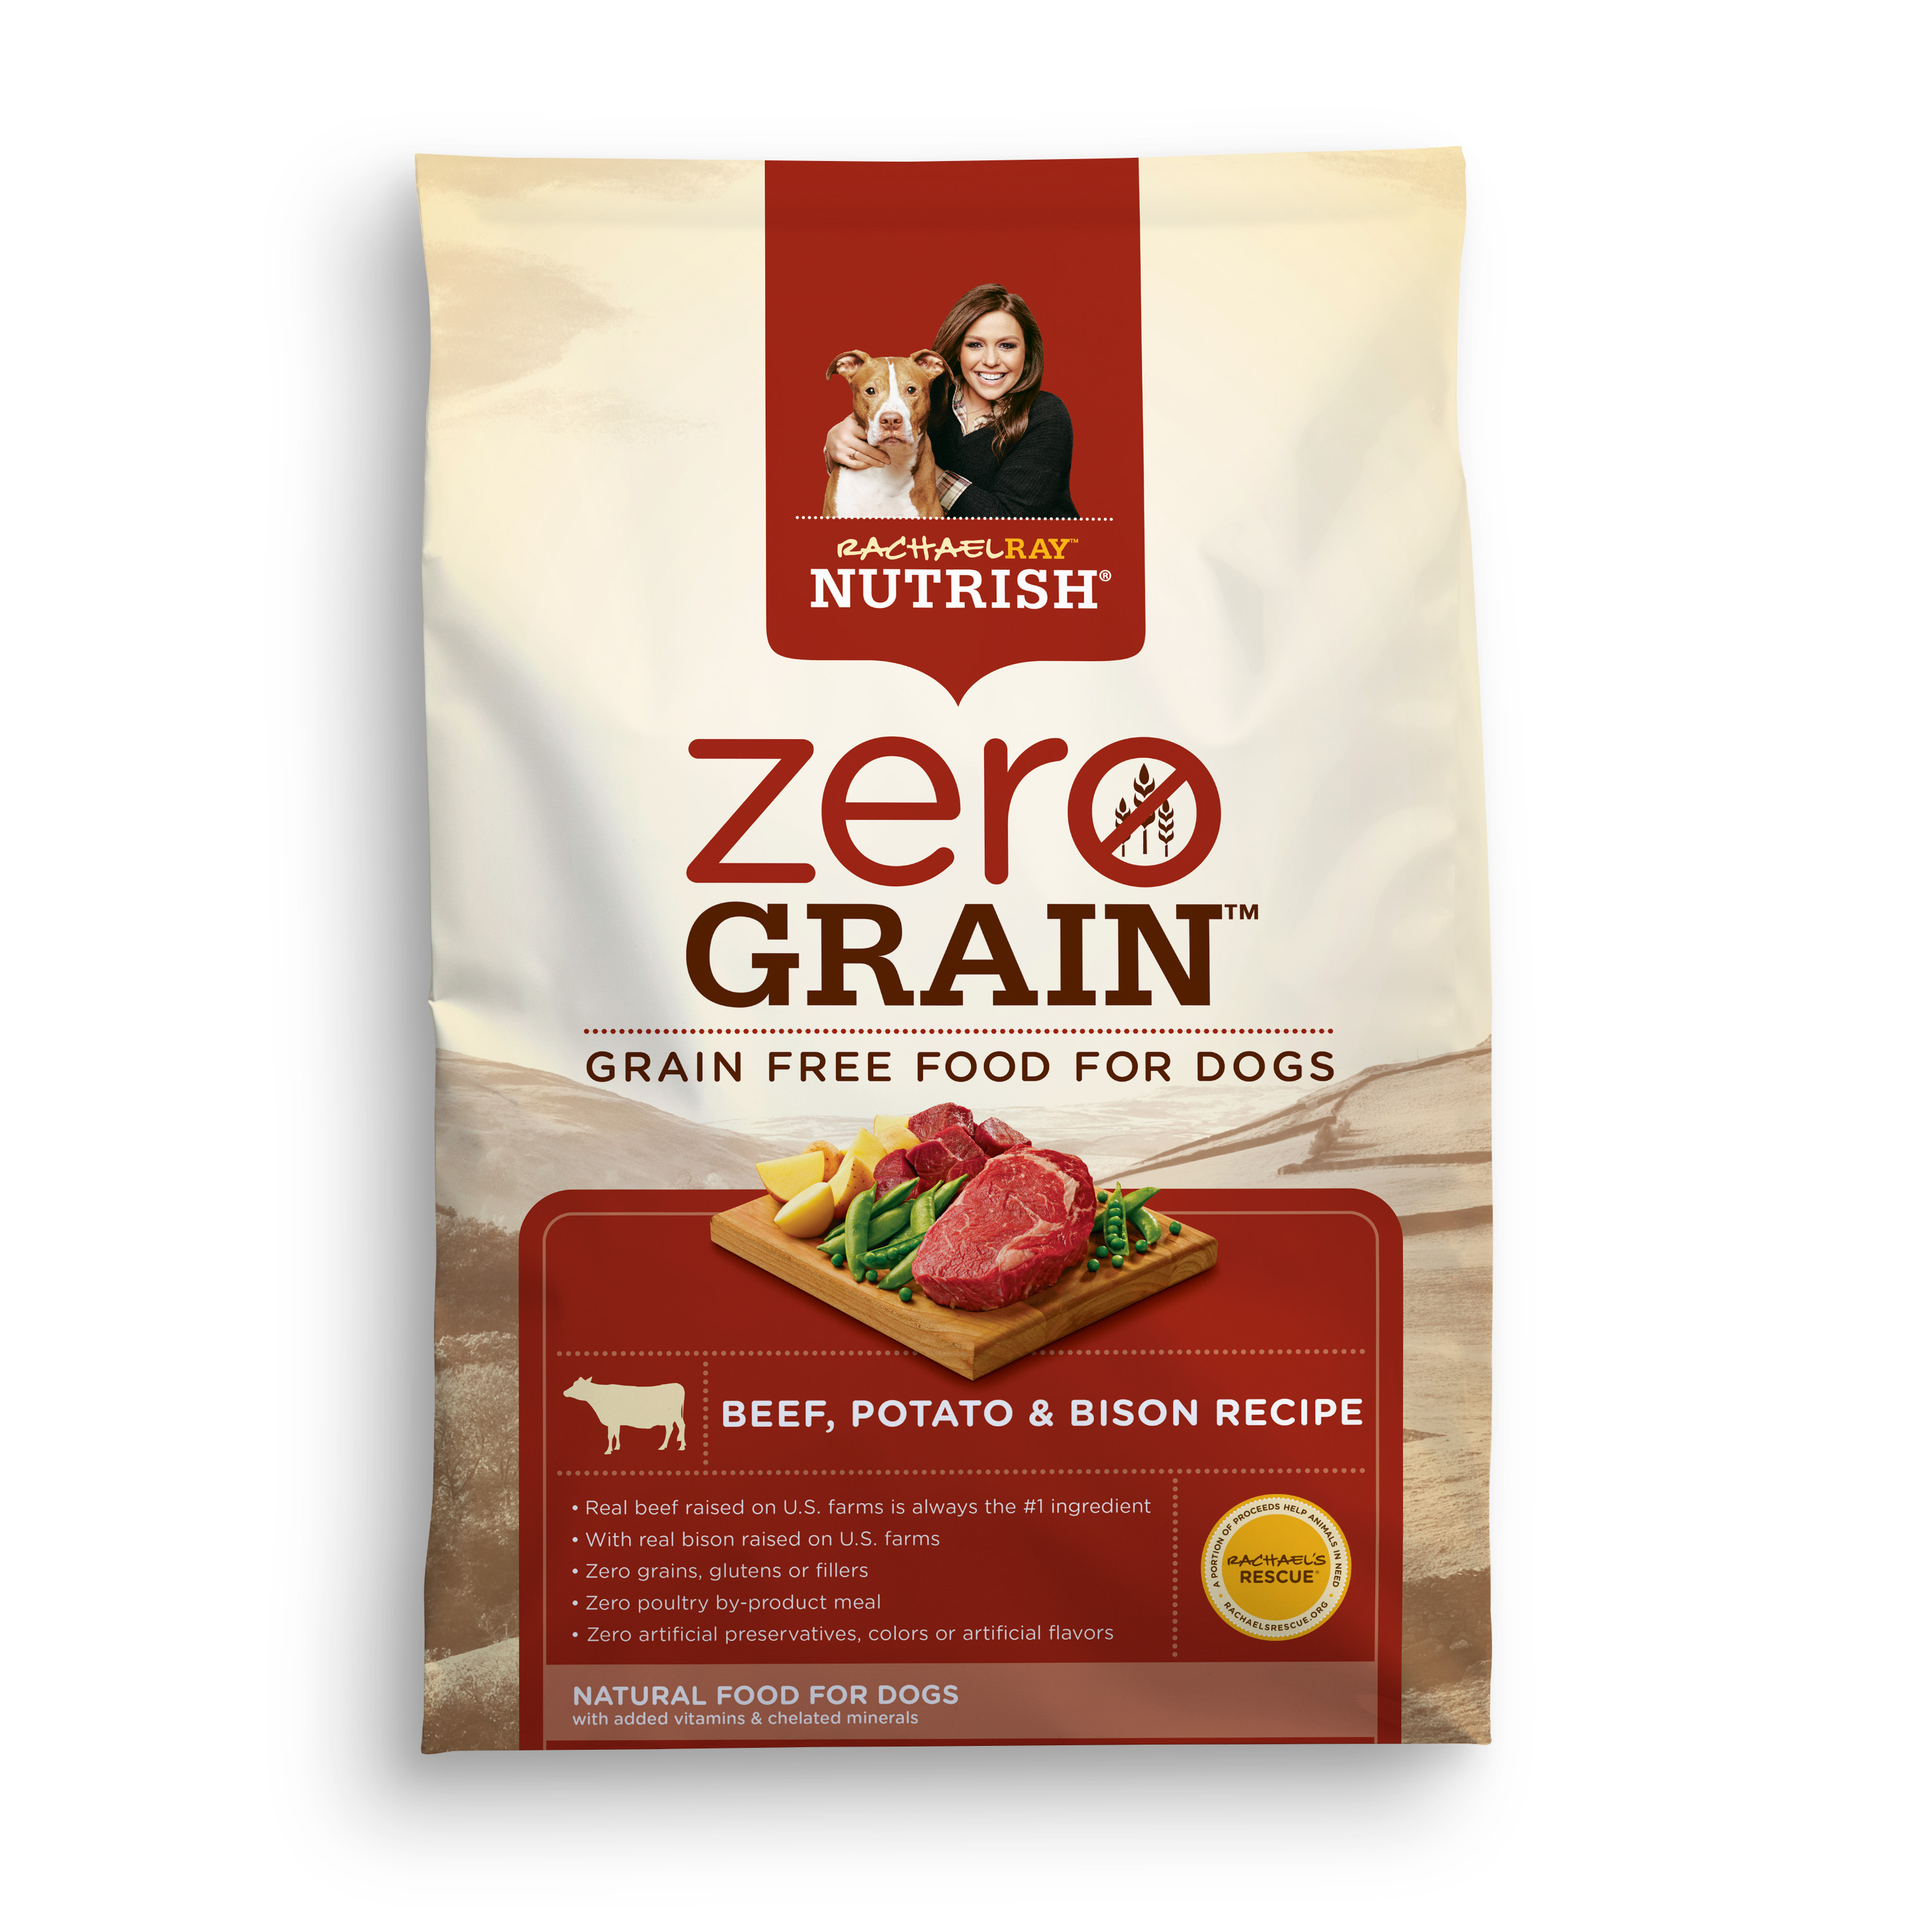 Rachael Ray Nutrish Zero Grain Natural Dry Dog Food, Beef, Potato & Bison Recipe, 11 lbs